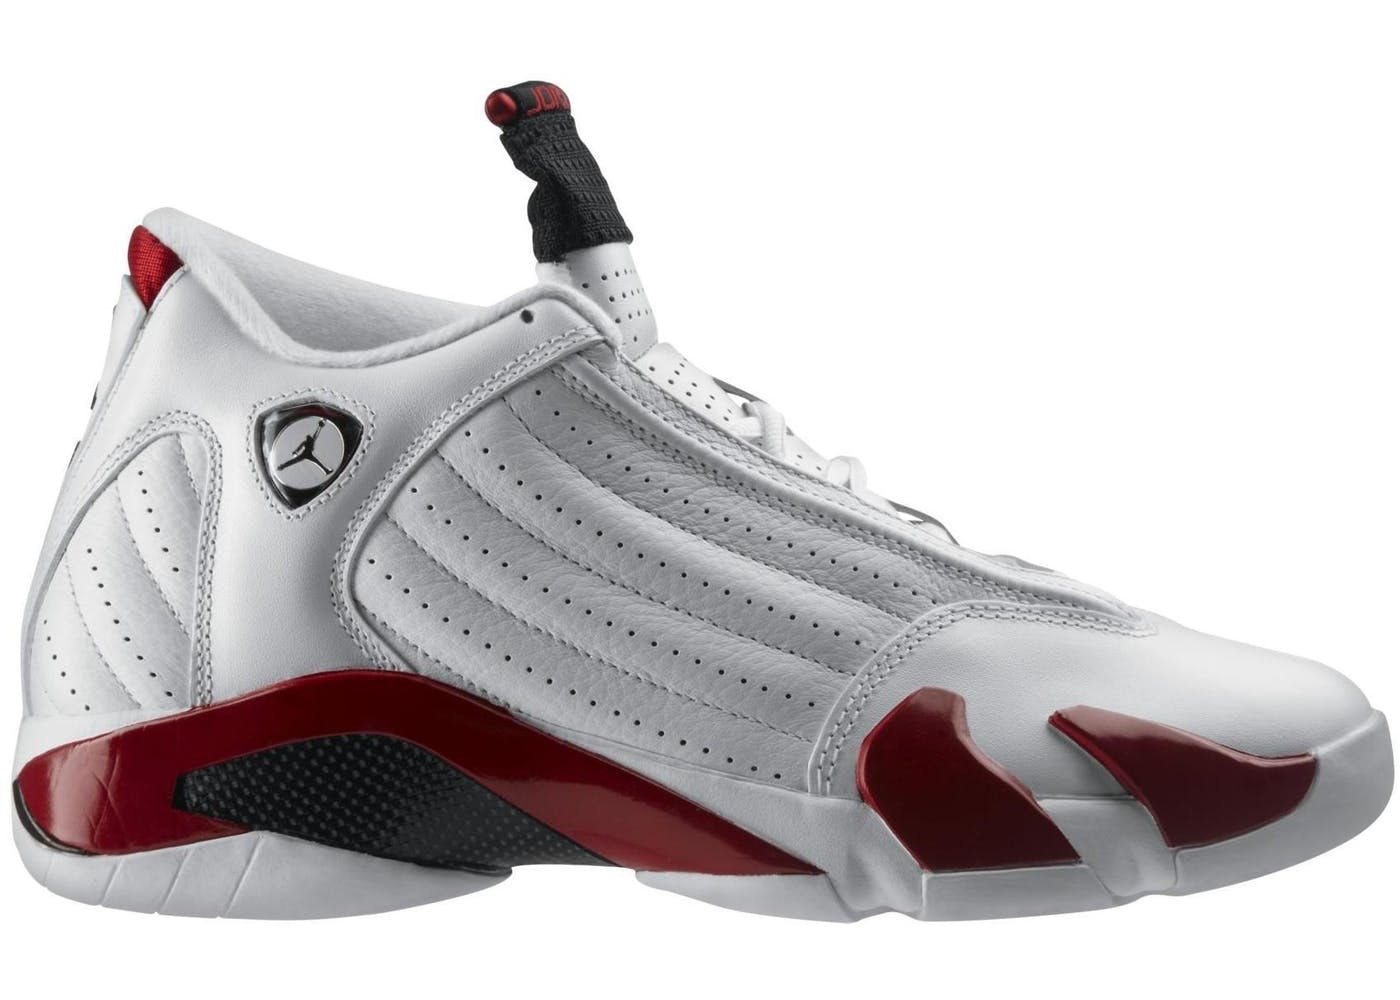 3be133b0cd2446 Retro Air Jordan 14 Buy and Sell Authentic Shoes